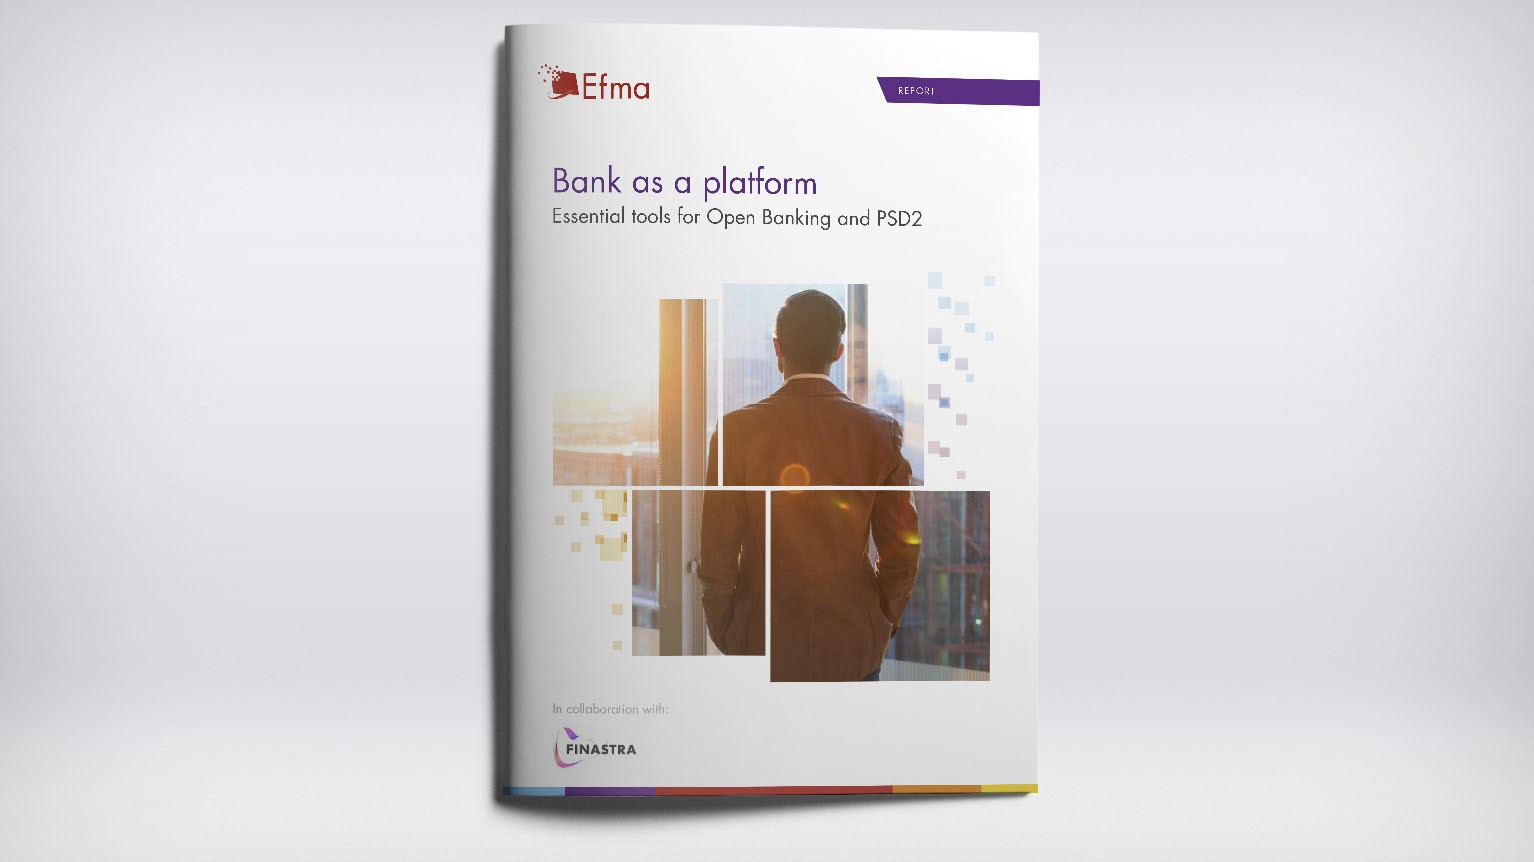 Bank as a Platform - The Essential Tools for Open Banking and PSD2